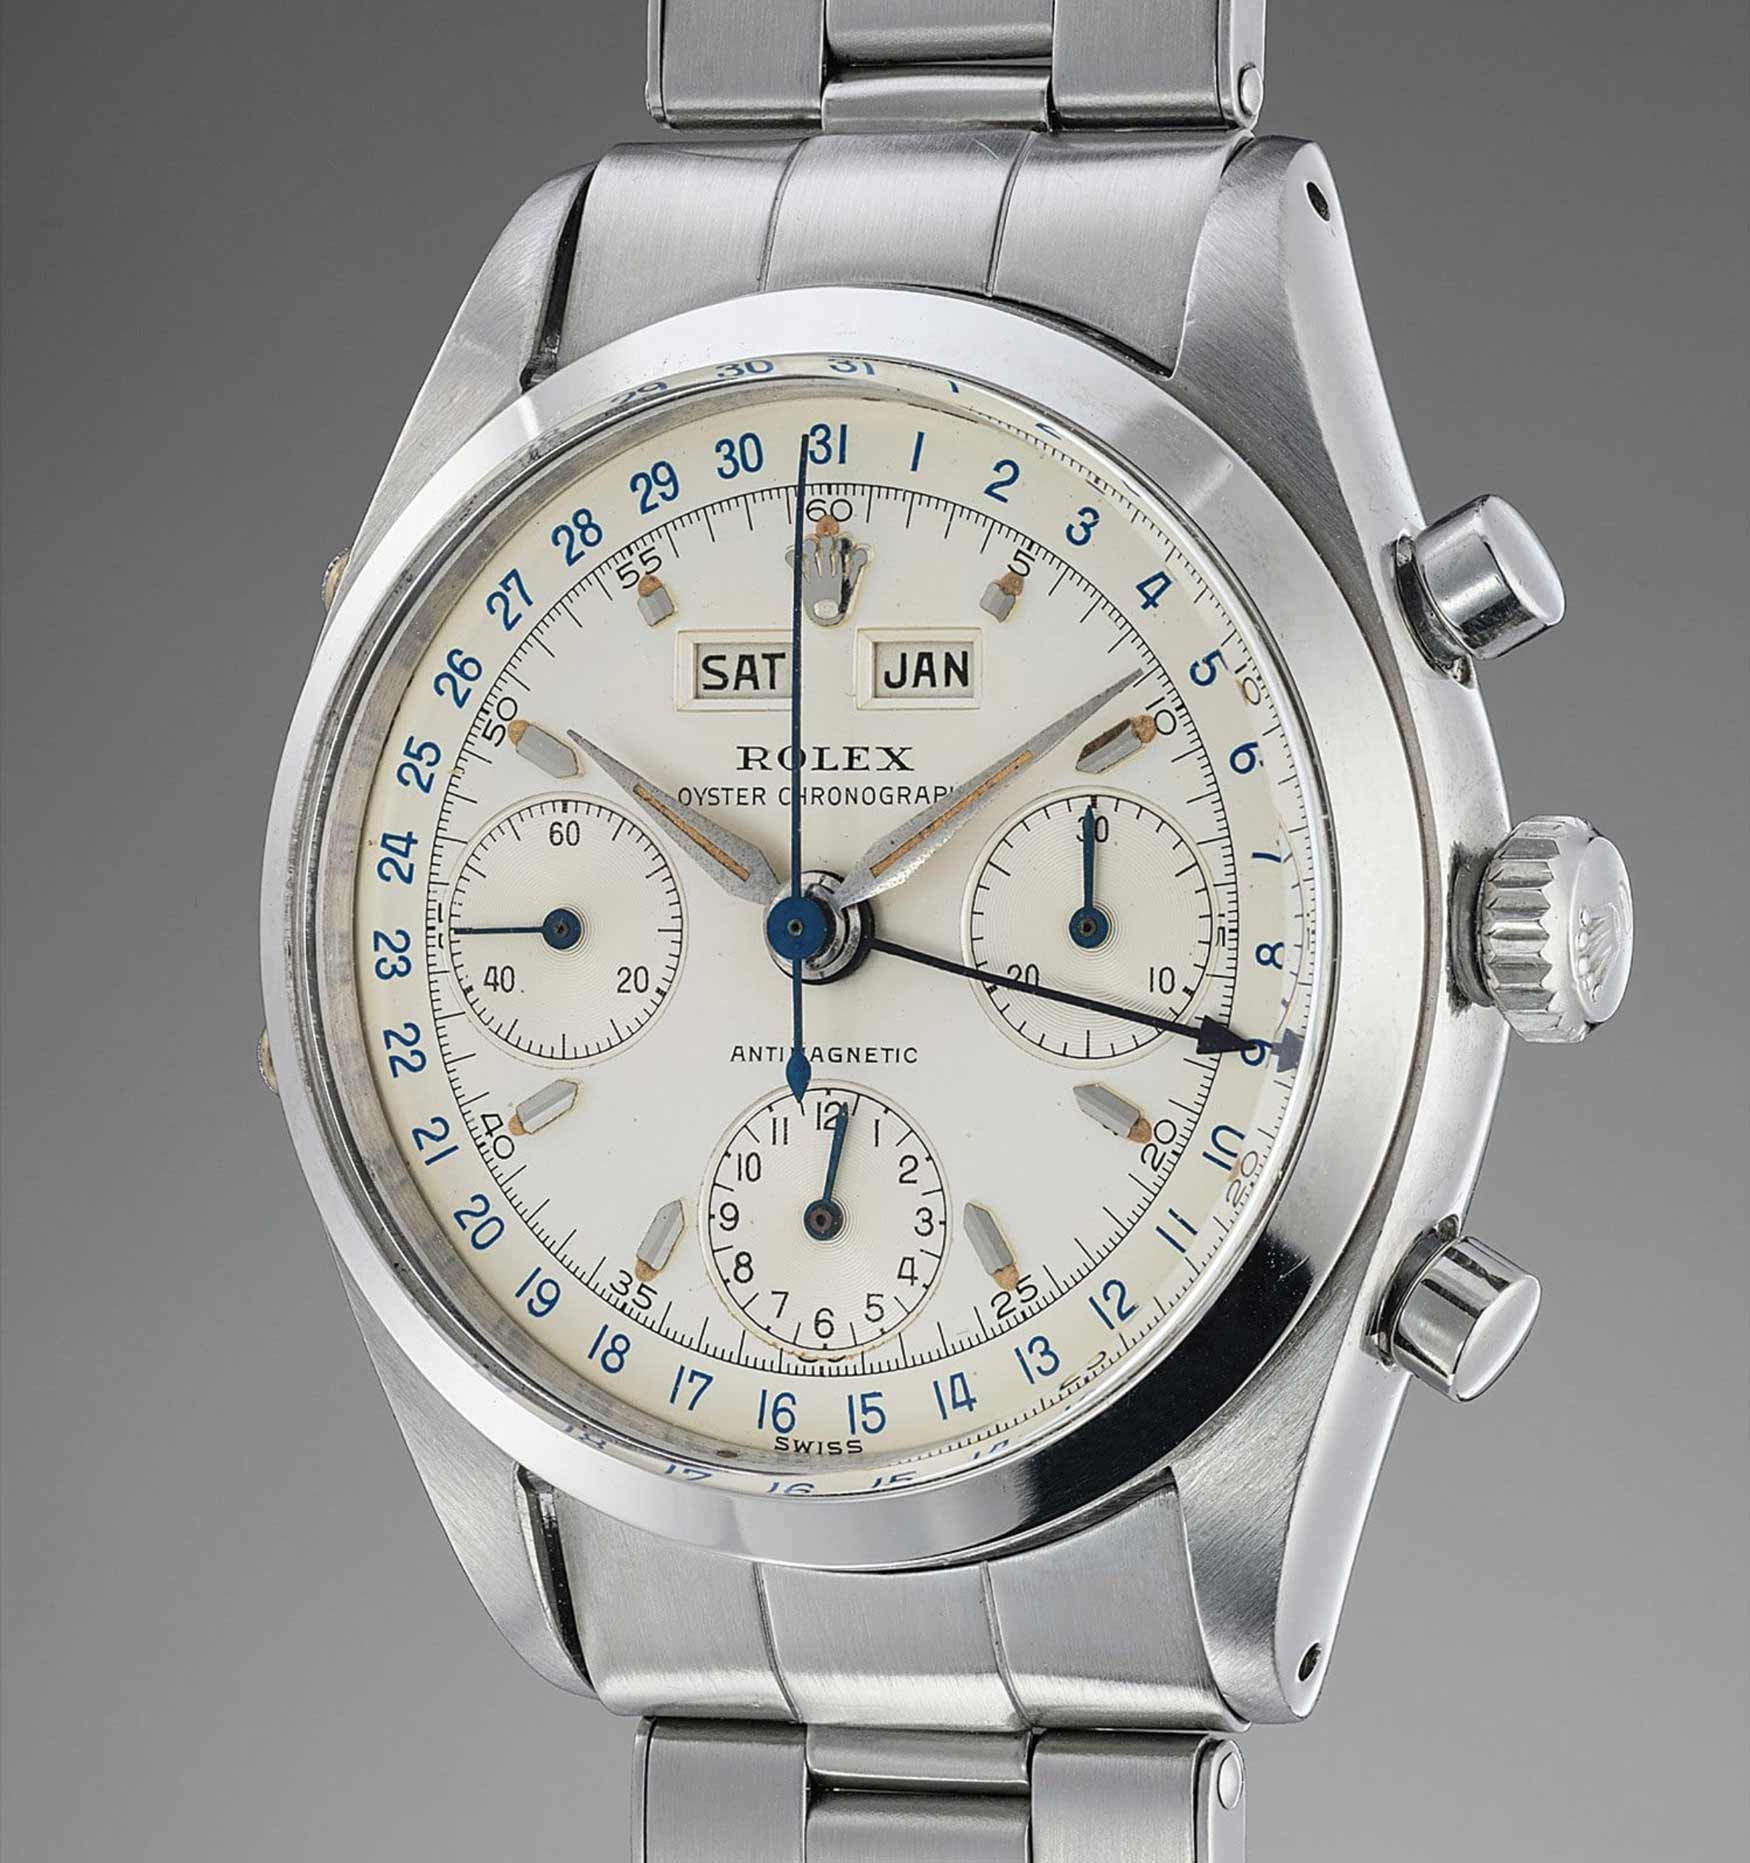 This Pre-Daytona Chronograph is sure to exceed estimates (photo courtesy of Phillips)